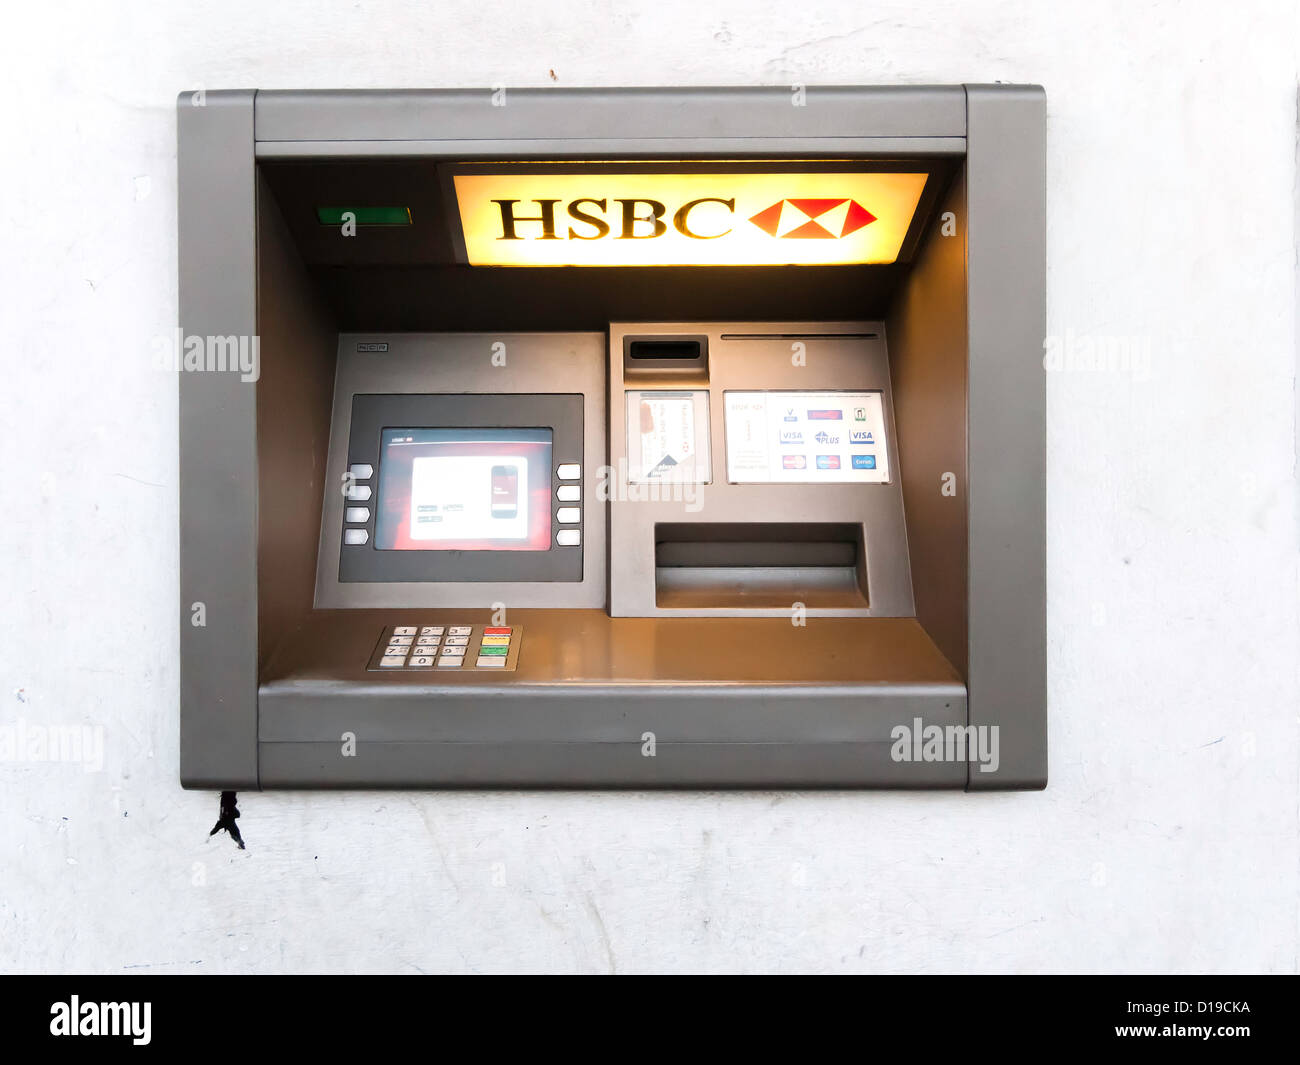 Cash Machine Stock Photos & Cash Machine Stock Images - Alamy